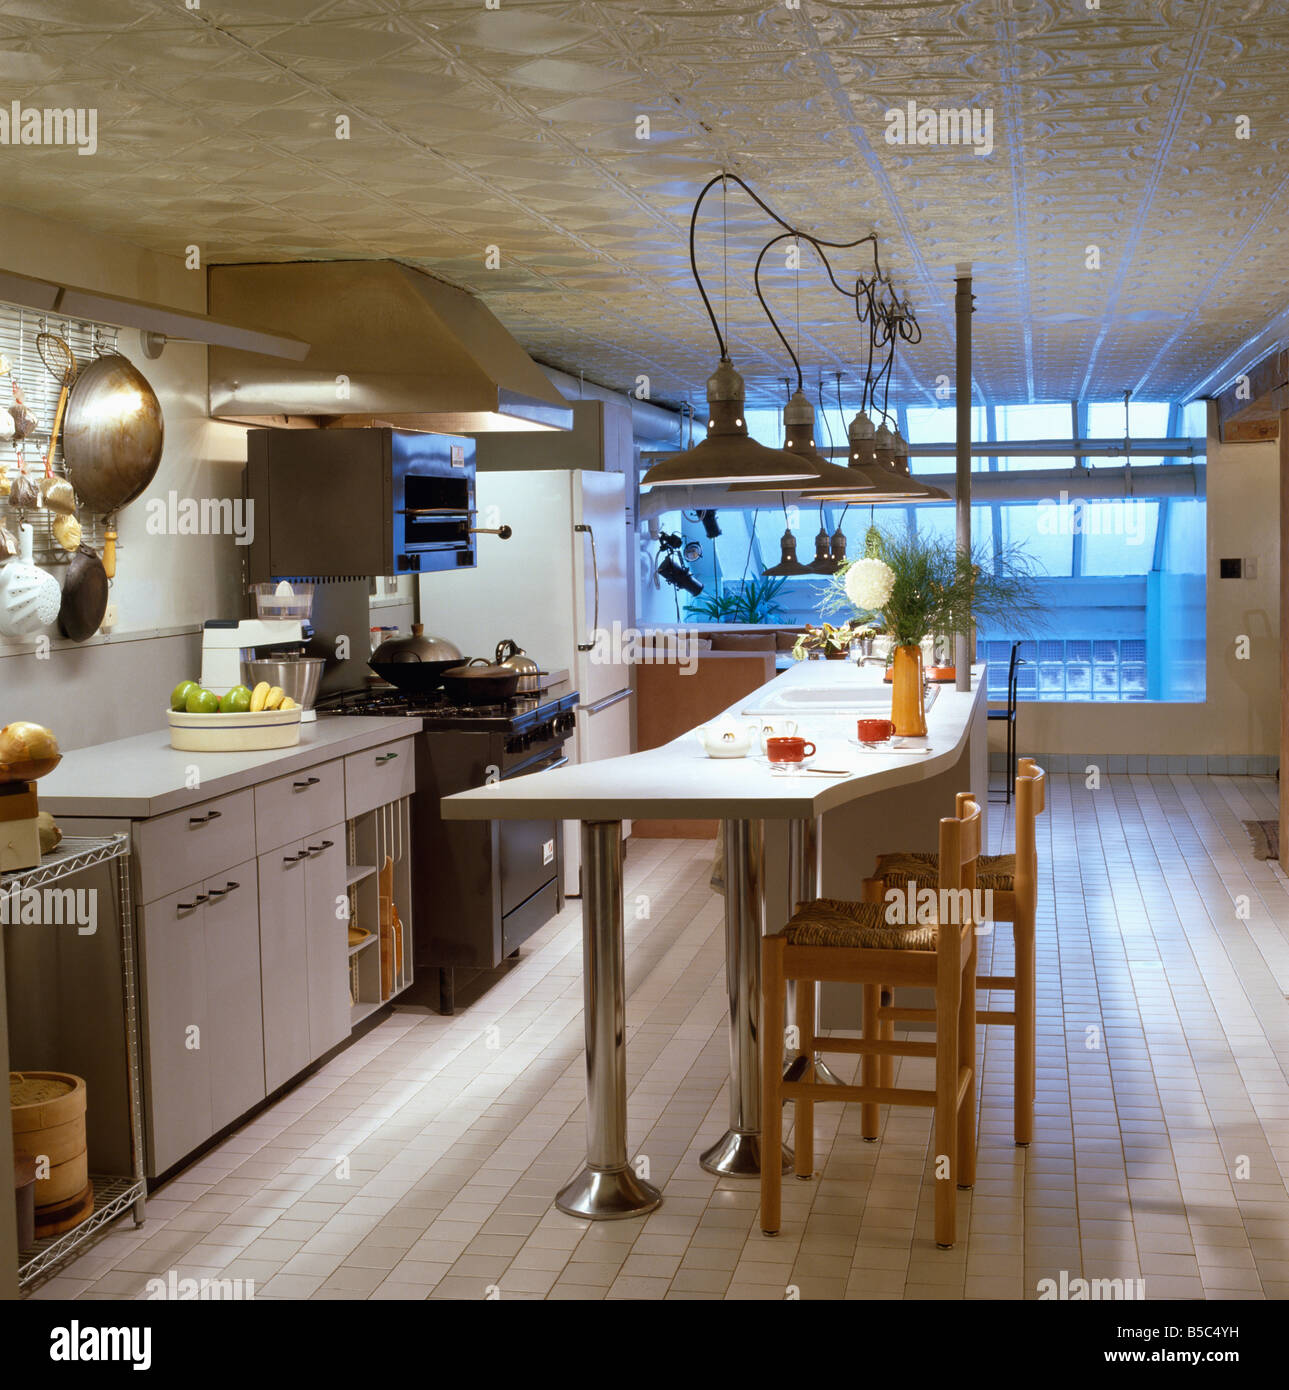 Pendant Lighting Kitchen Bar: Pendant Lights Above Breakfast Bar With Wooden Stools In